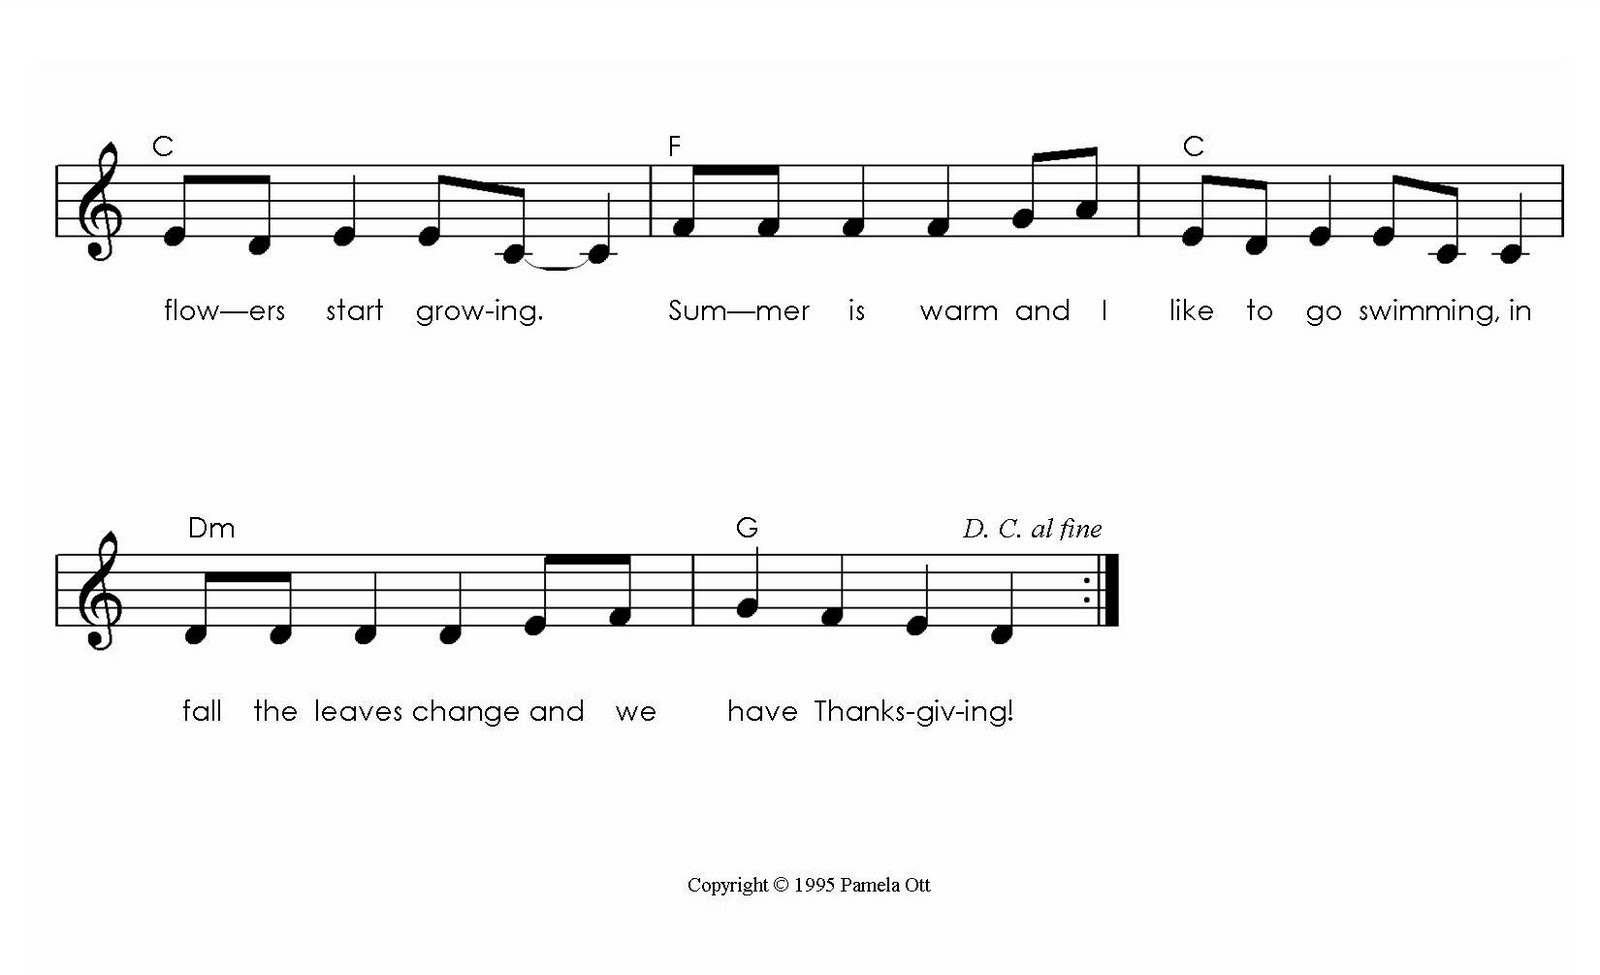 Music for special kids 2011 the chords are included so that you can accompany on piano guitar autoharp or q chord if you wish hexwebz Image collections